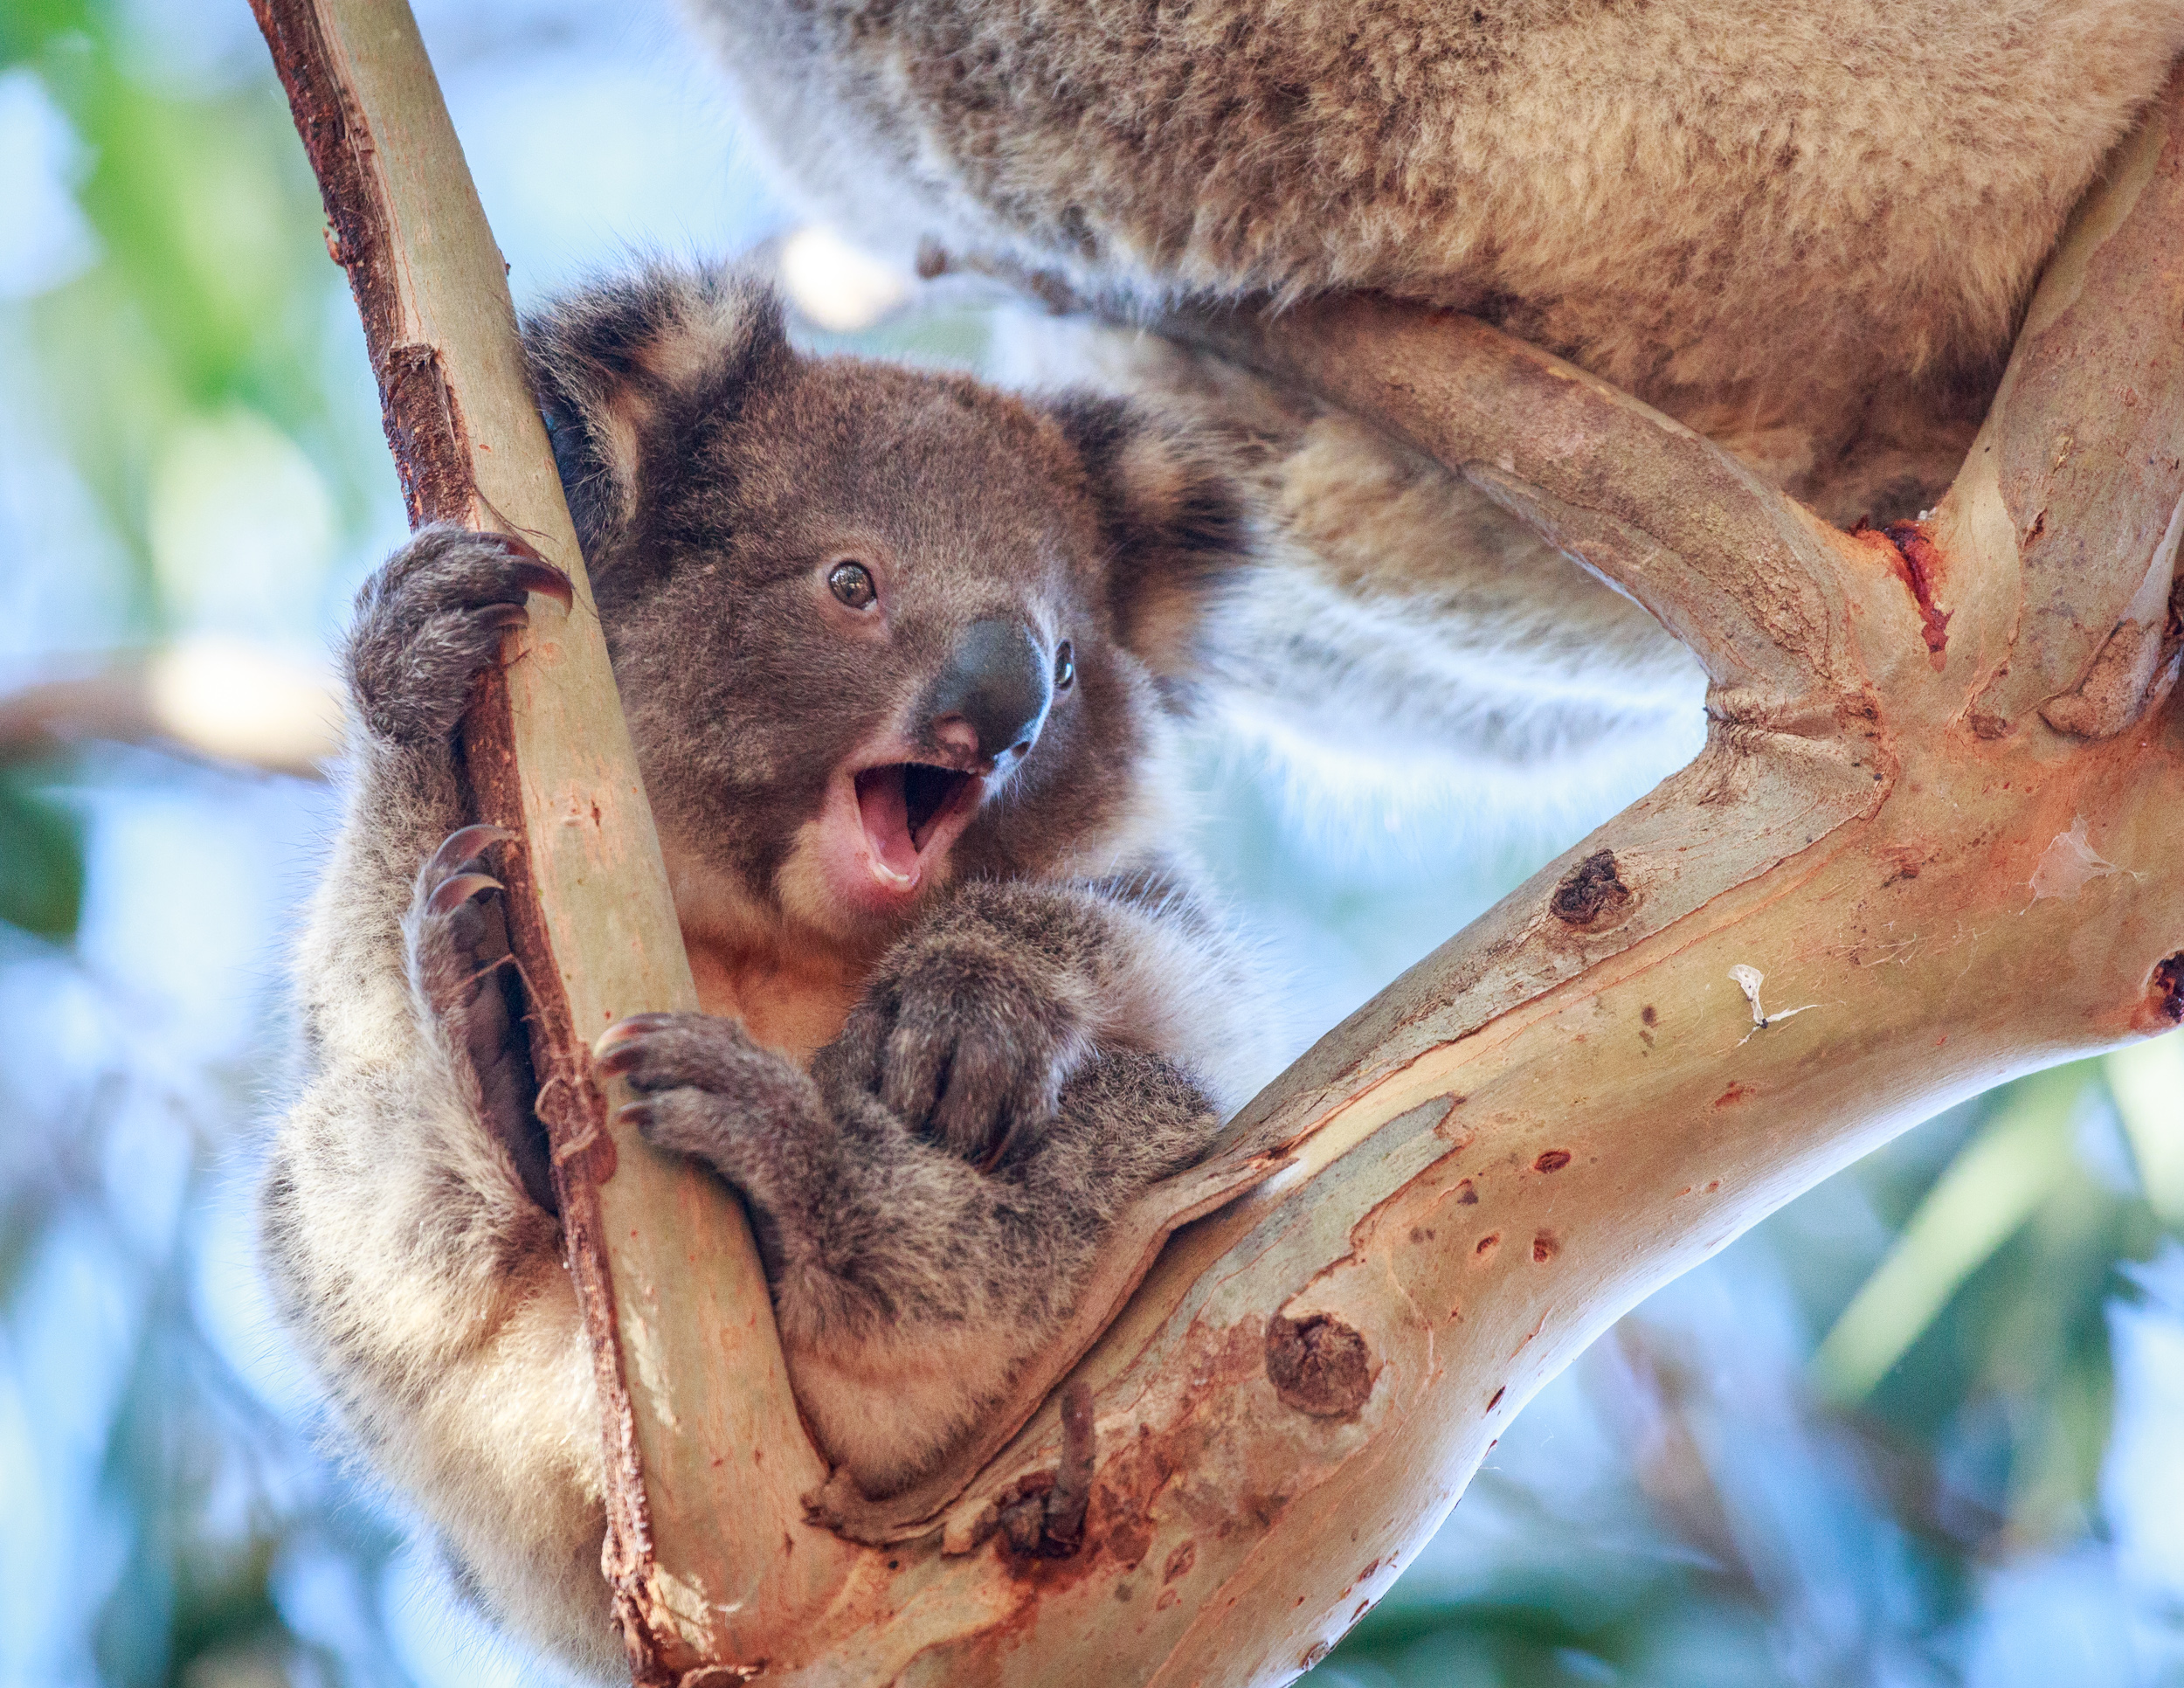 The cost of travelling Australia: Koala